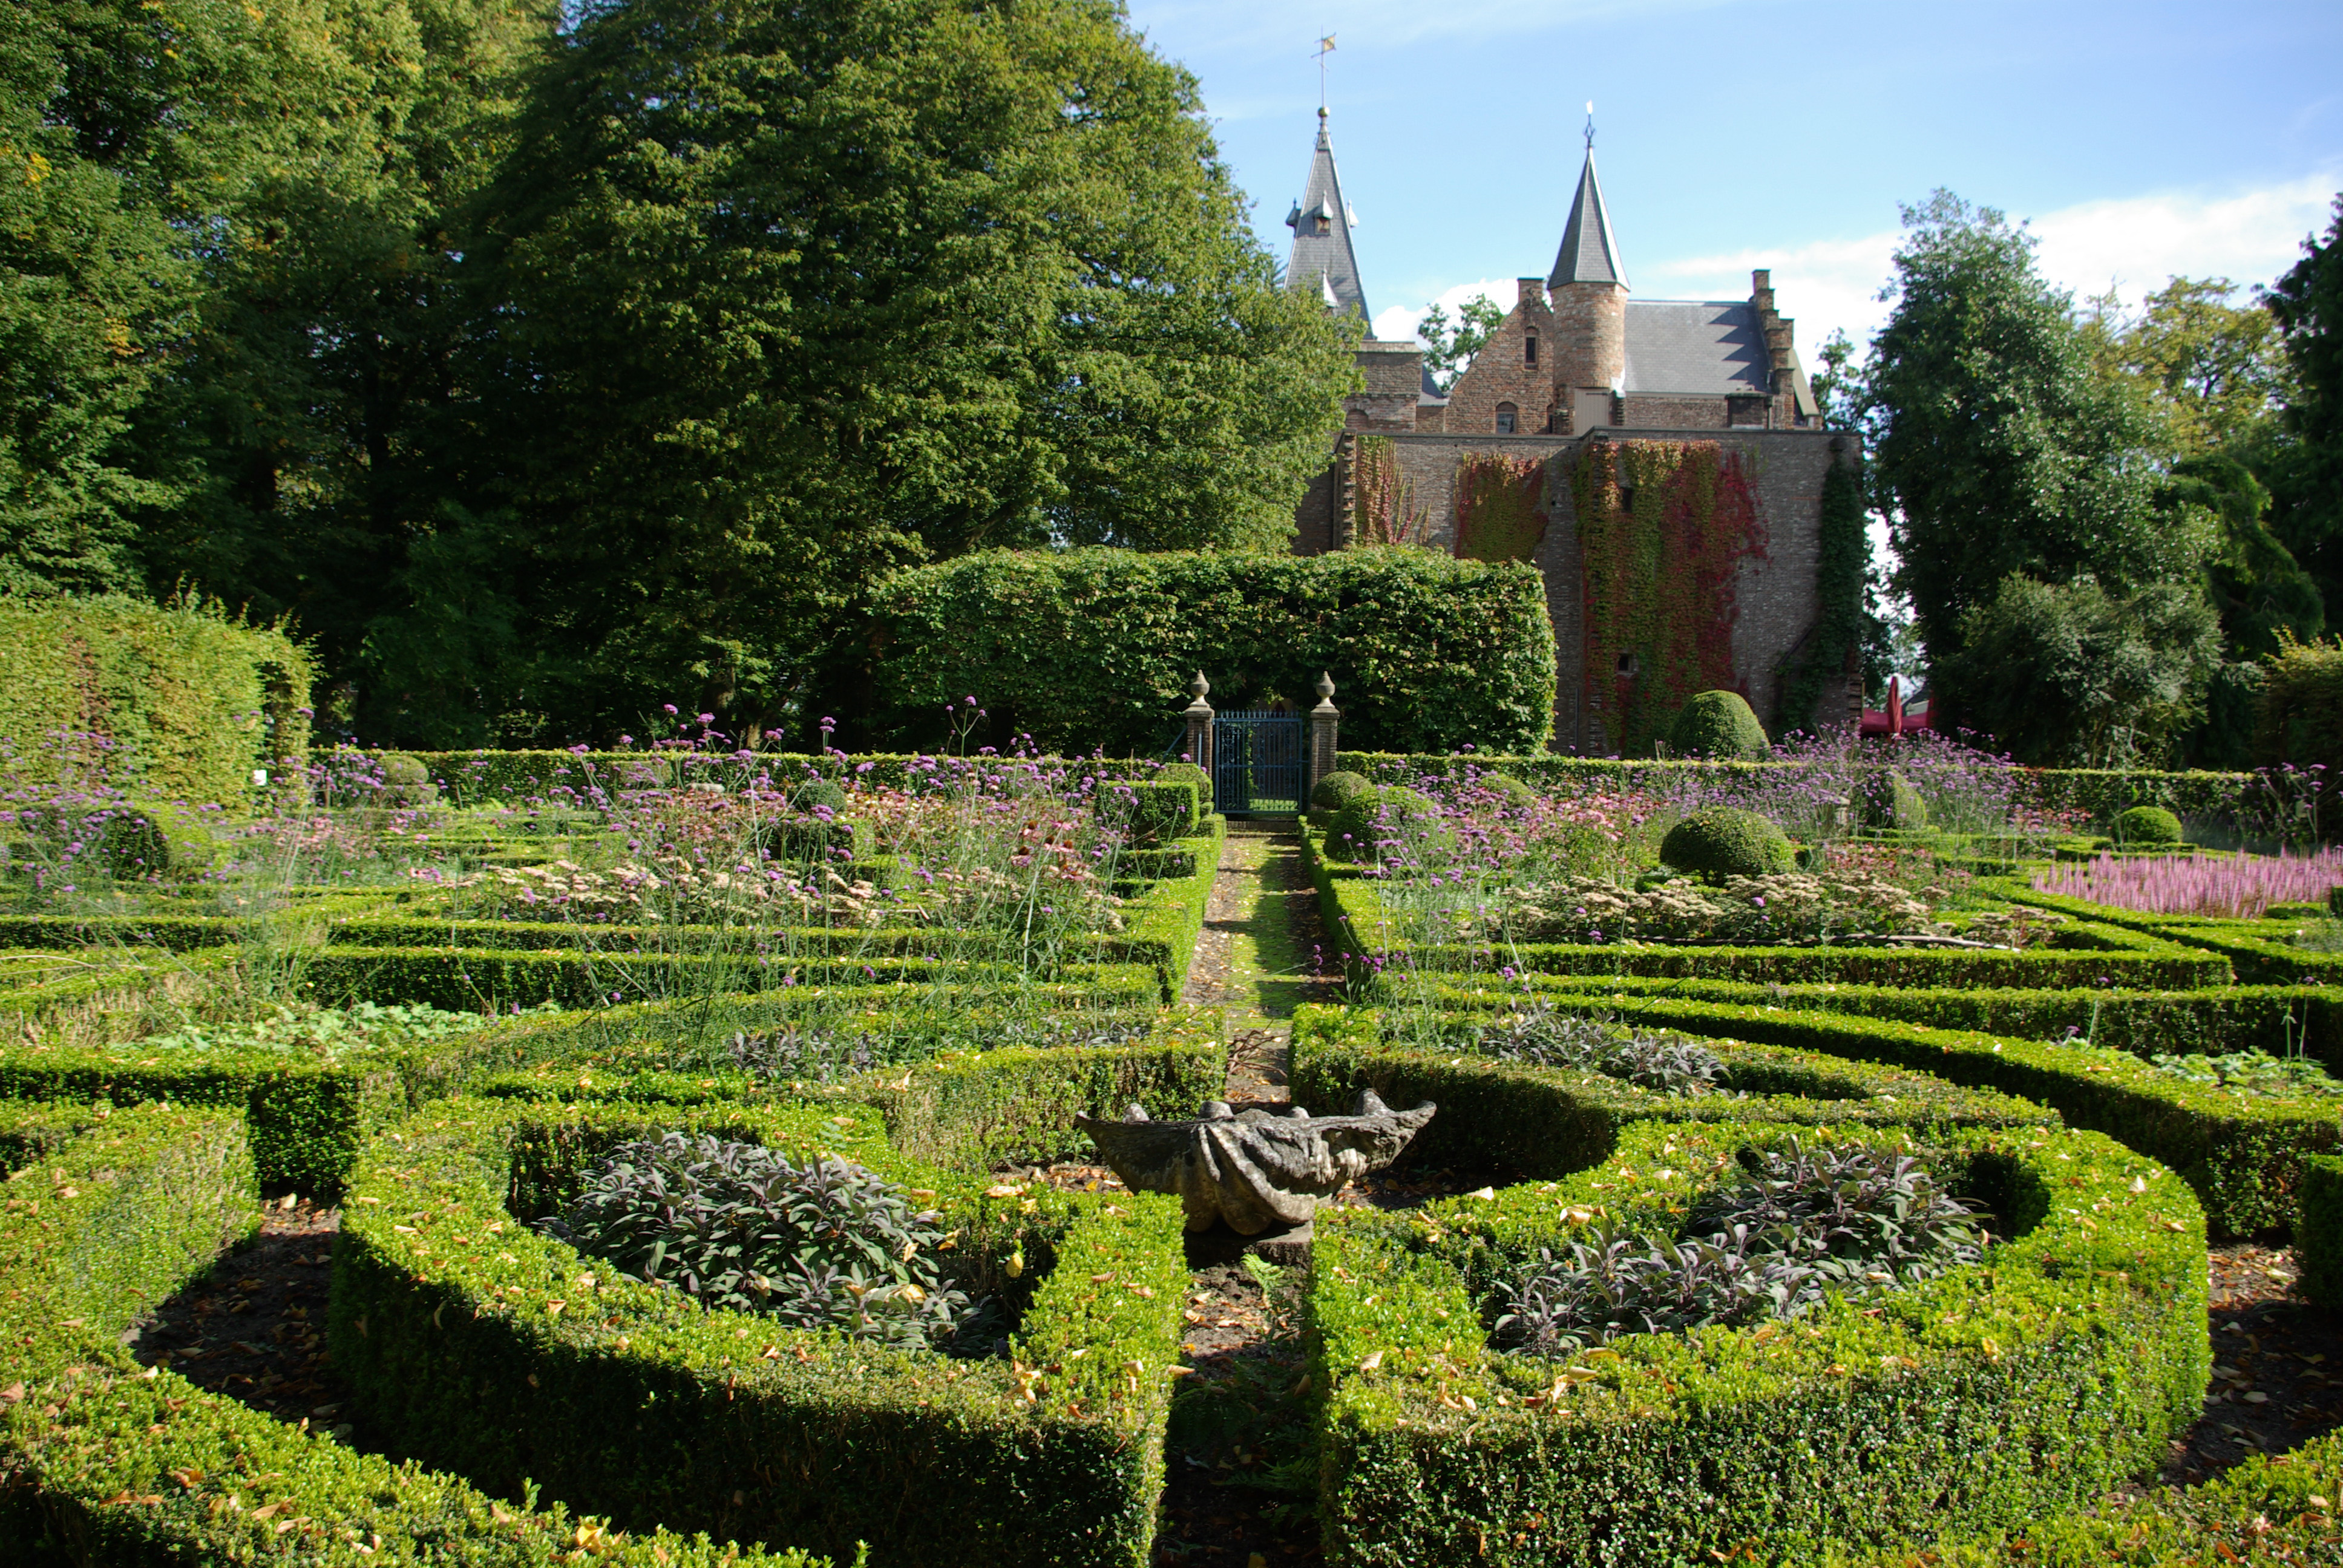 holland's castle gardens - castles & country houses - holland